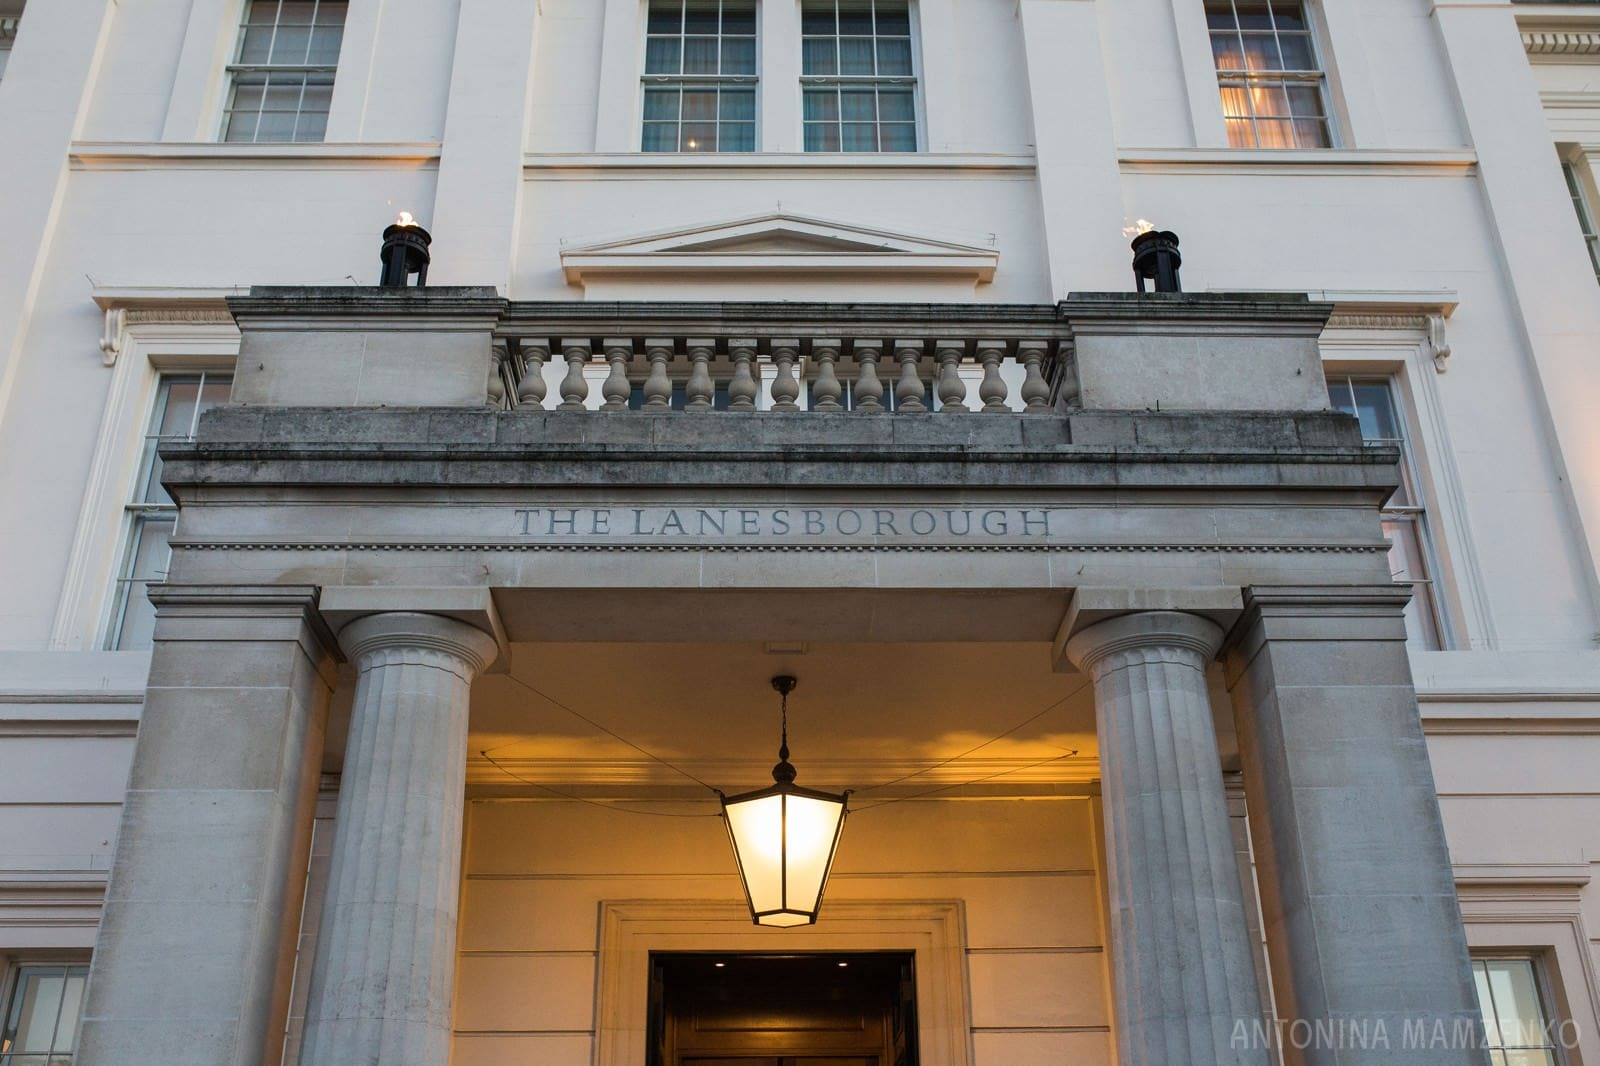 The Lanesborough Hotel in Central London